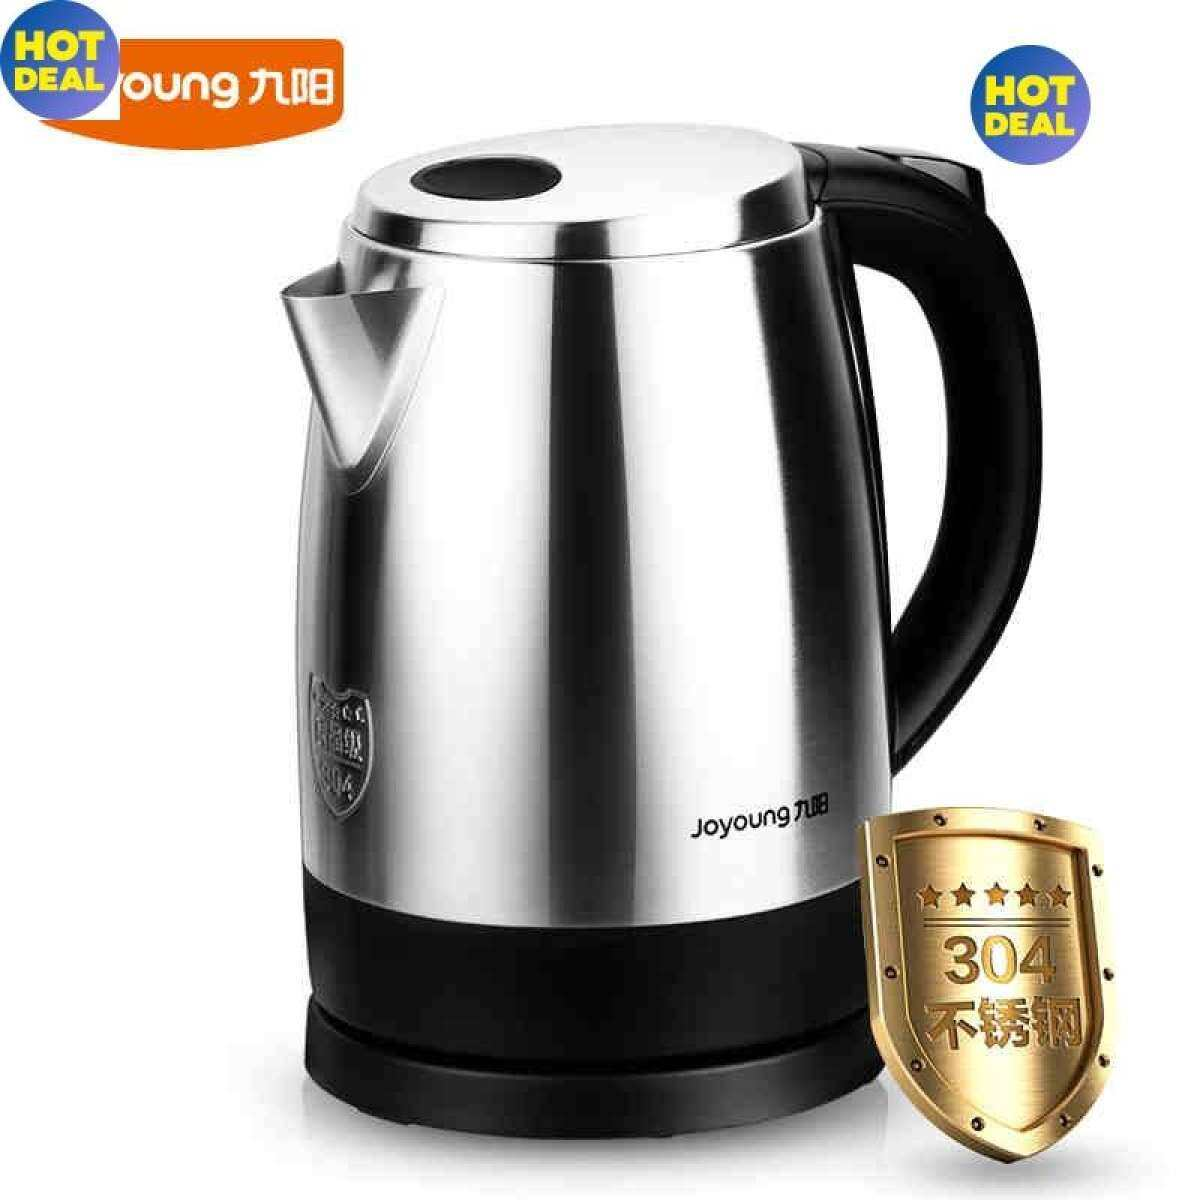 Joyoung JYK-17S08 High Quality Stainless Steel Electric Kettle 1.7L Heat Preservation Anti-dry Protection Auto-off Kettle (Silver)